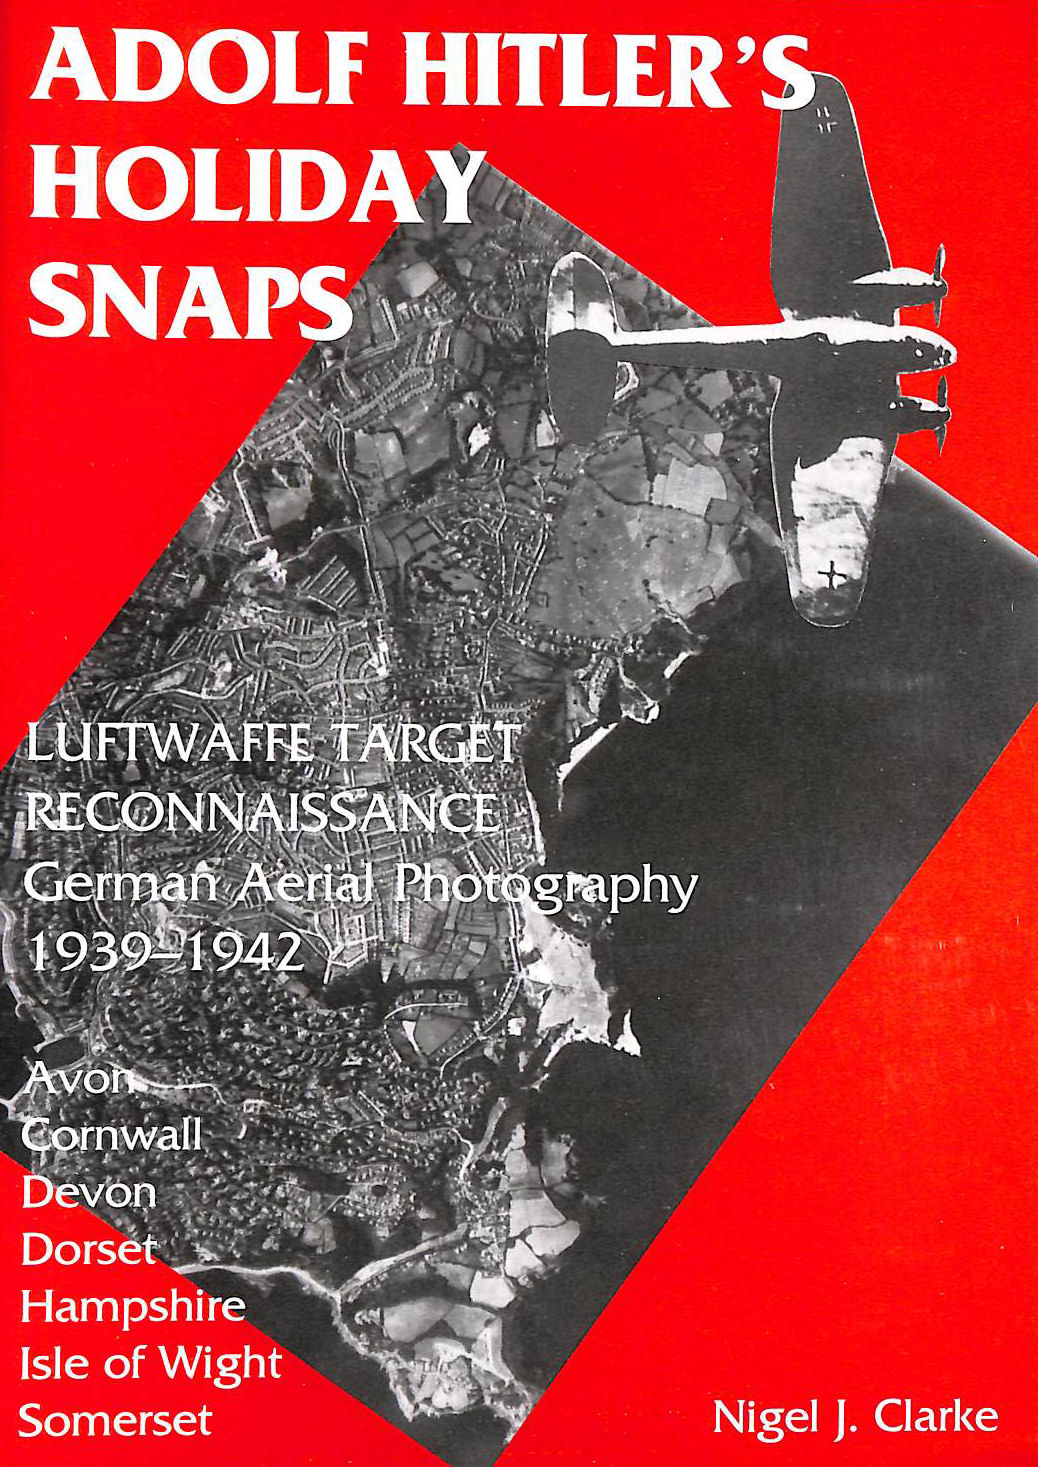 Image for Adolf Hitler's Holiday Snaps: Avon, Cornwall, Devon, Dorset, Hampshire, Isle of Wight, Somerset: Luftwaffe Target Reconnaissance - German Aerial Photography, 1939-42